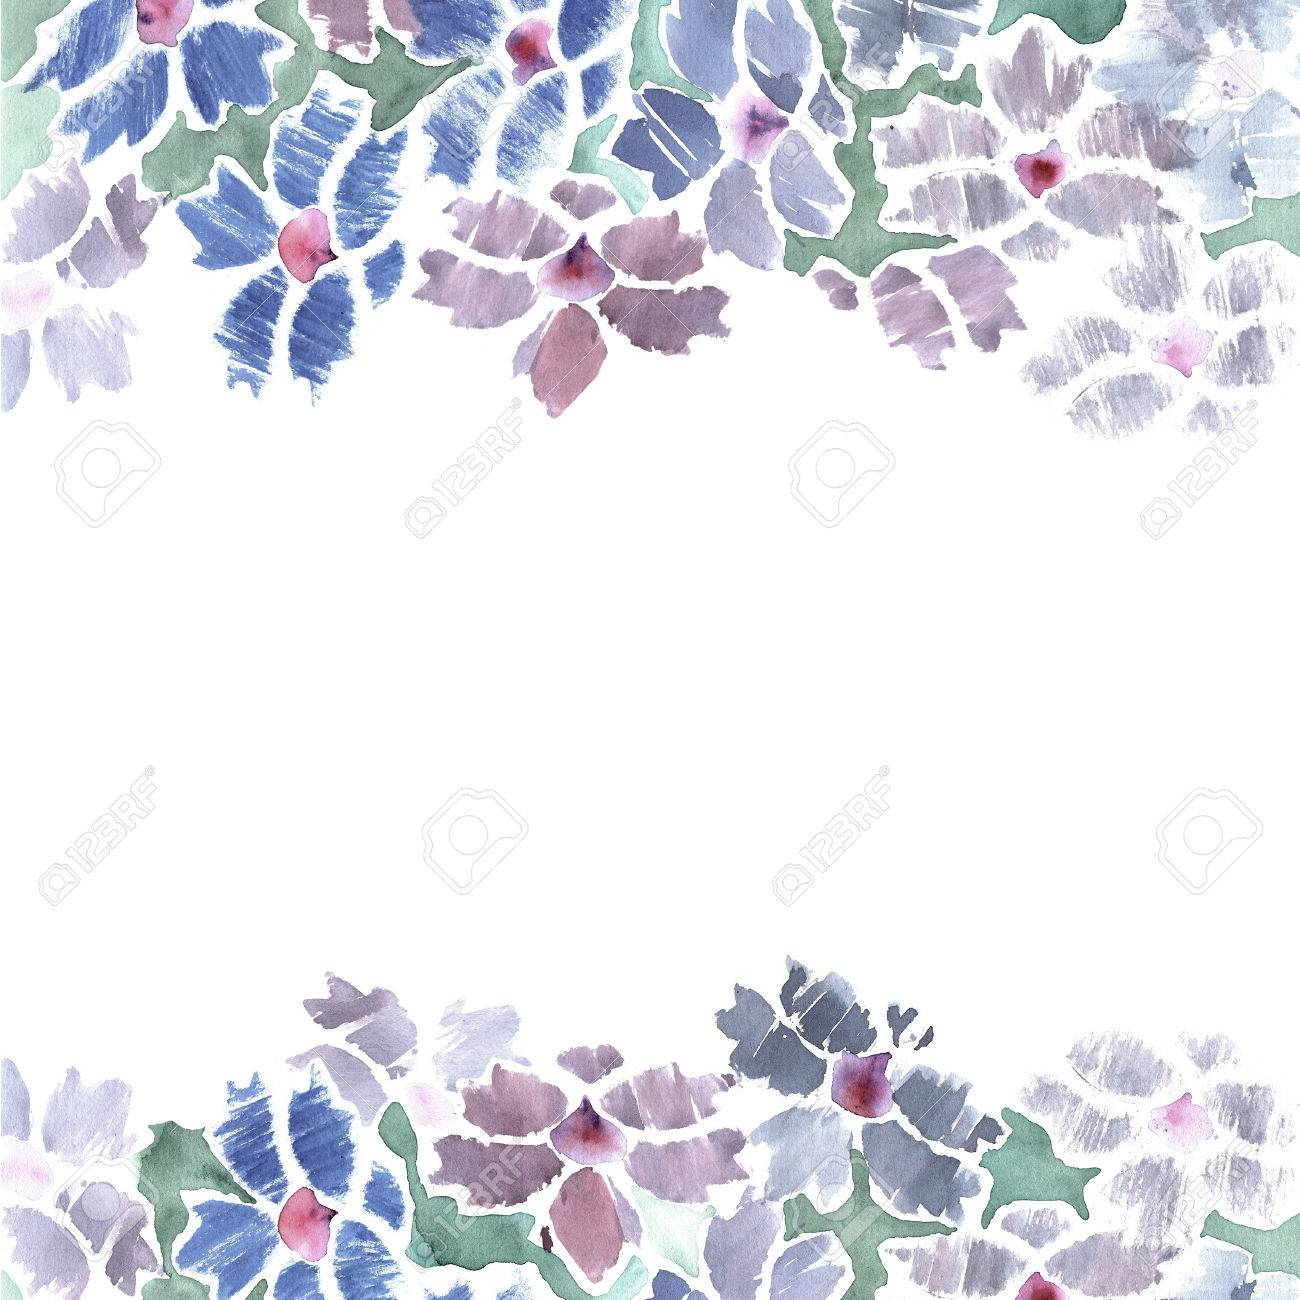 birthday flower borders ; 65195544-cute-watercolor-flower-border-with-blue-bachelor-buttons-invitation-wedding-card-birthday-card-